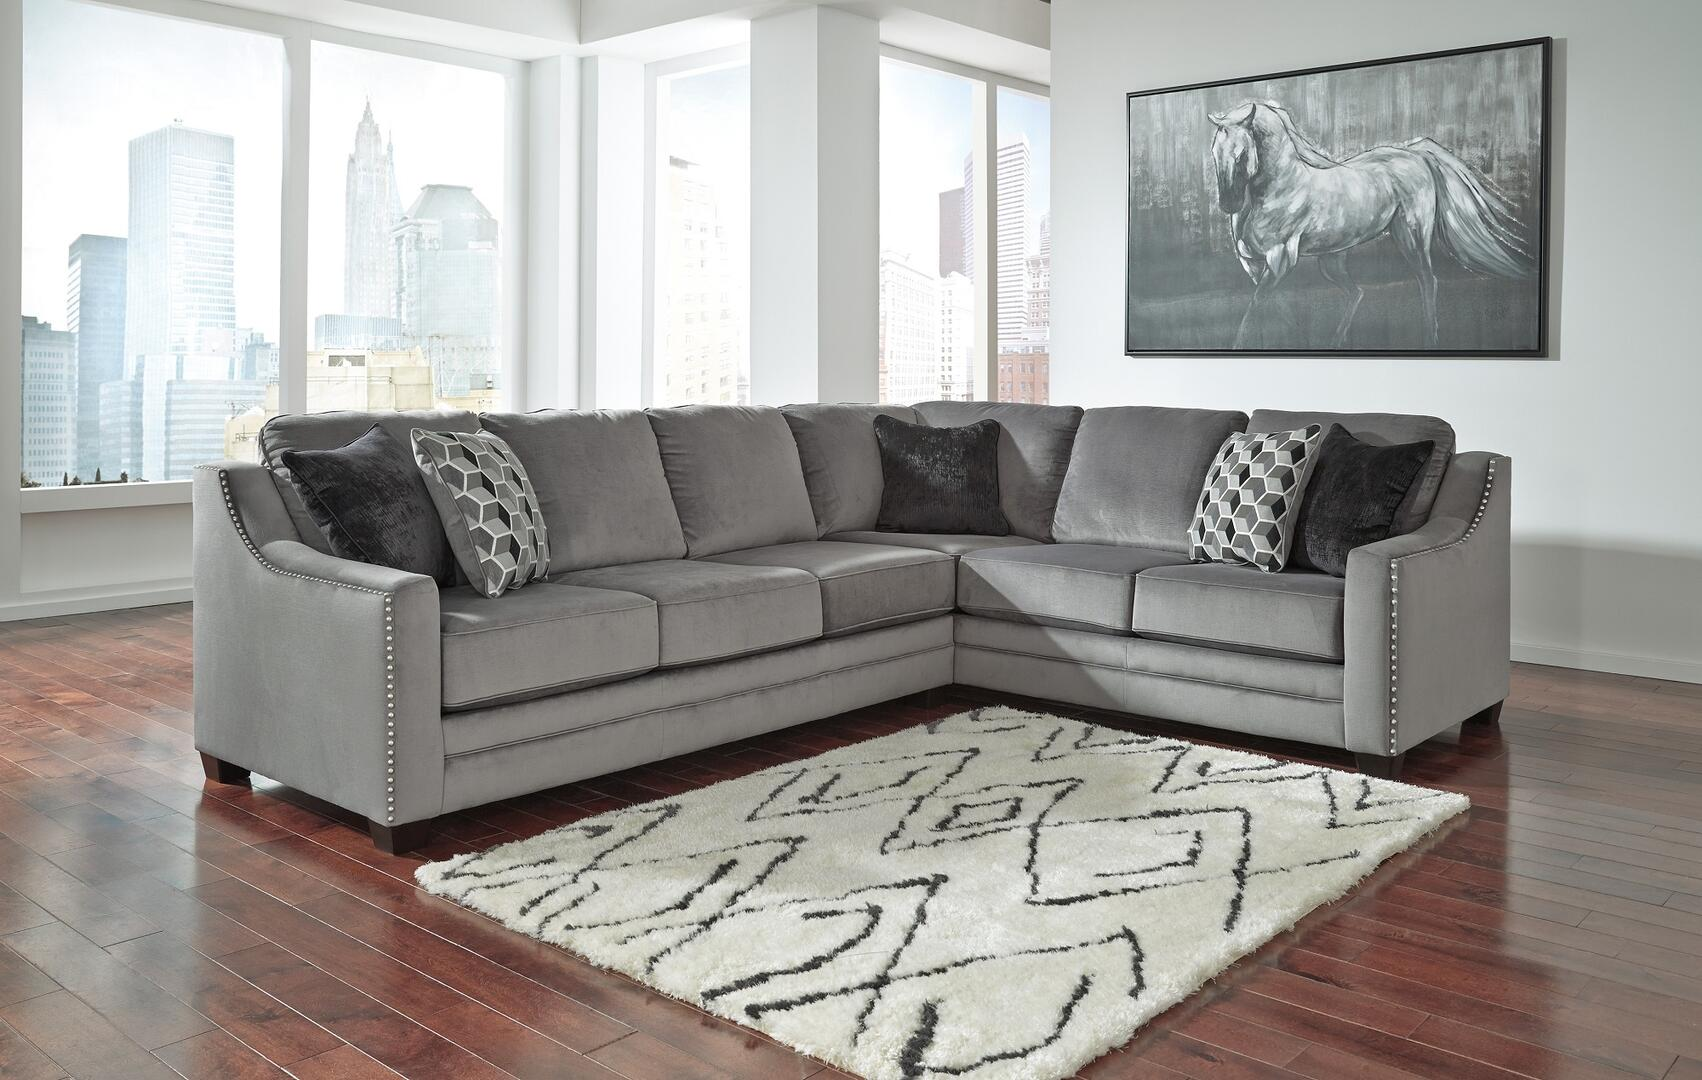 miramar leather sofa marco gray chaise by factory outlet reviews signature design ashley 8620466449 bicknell series